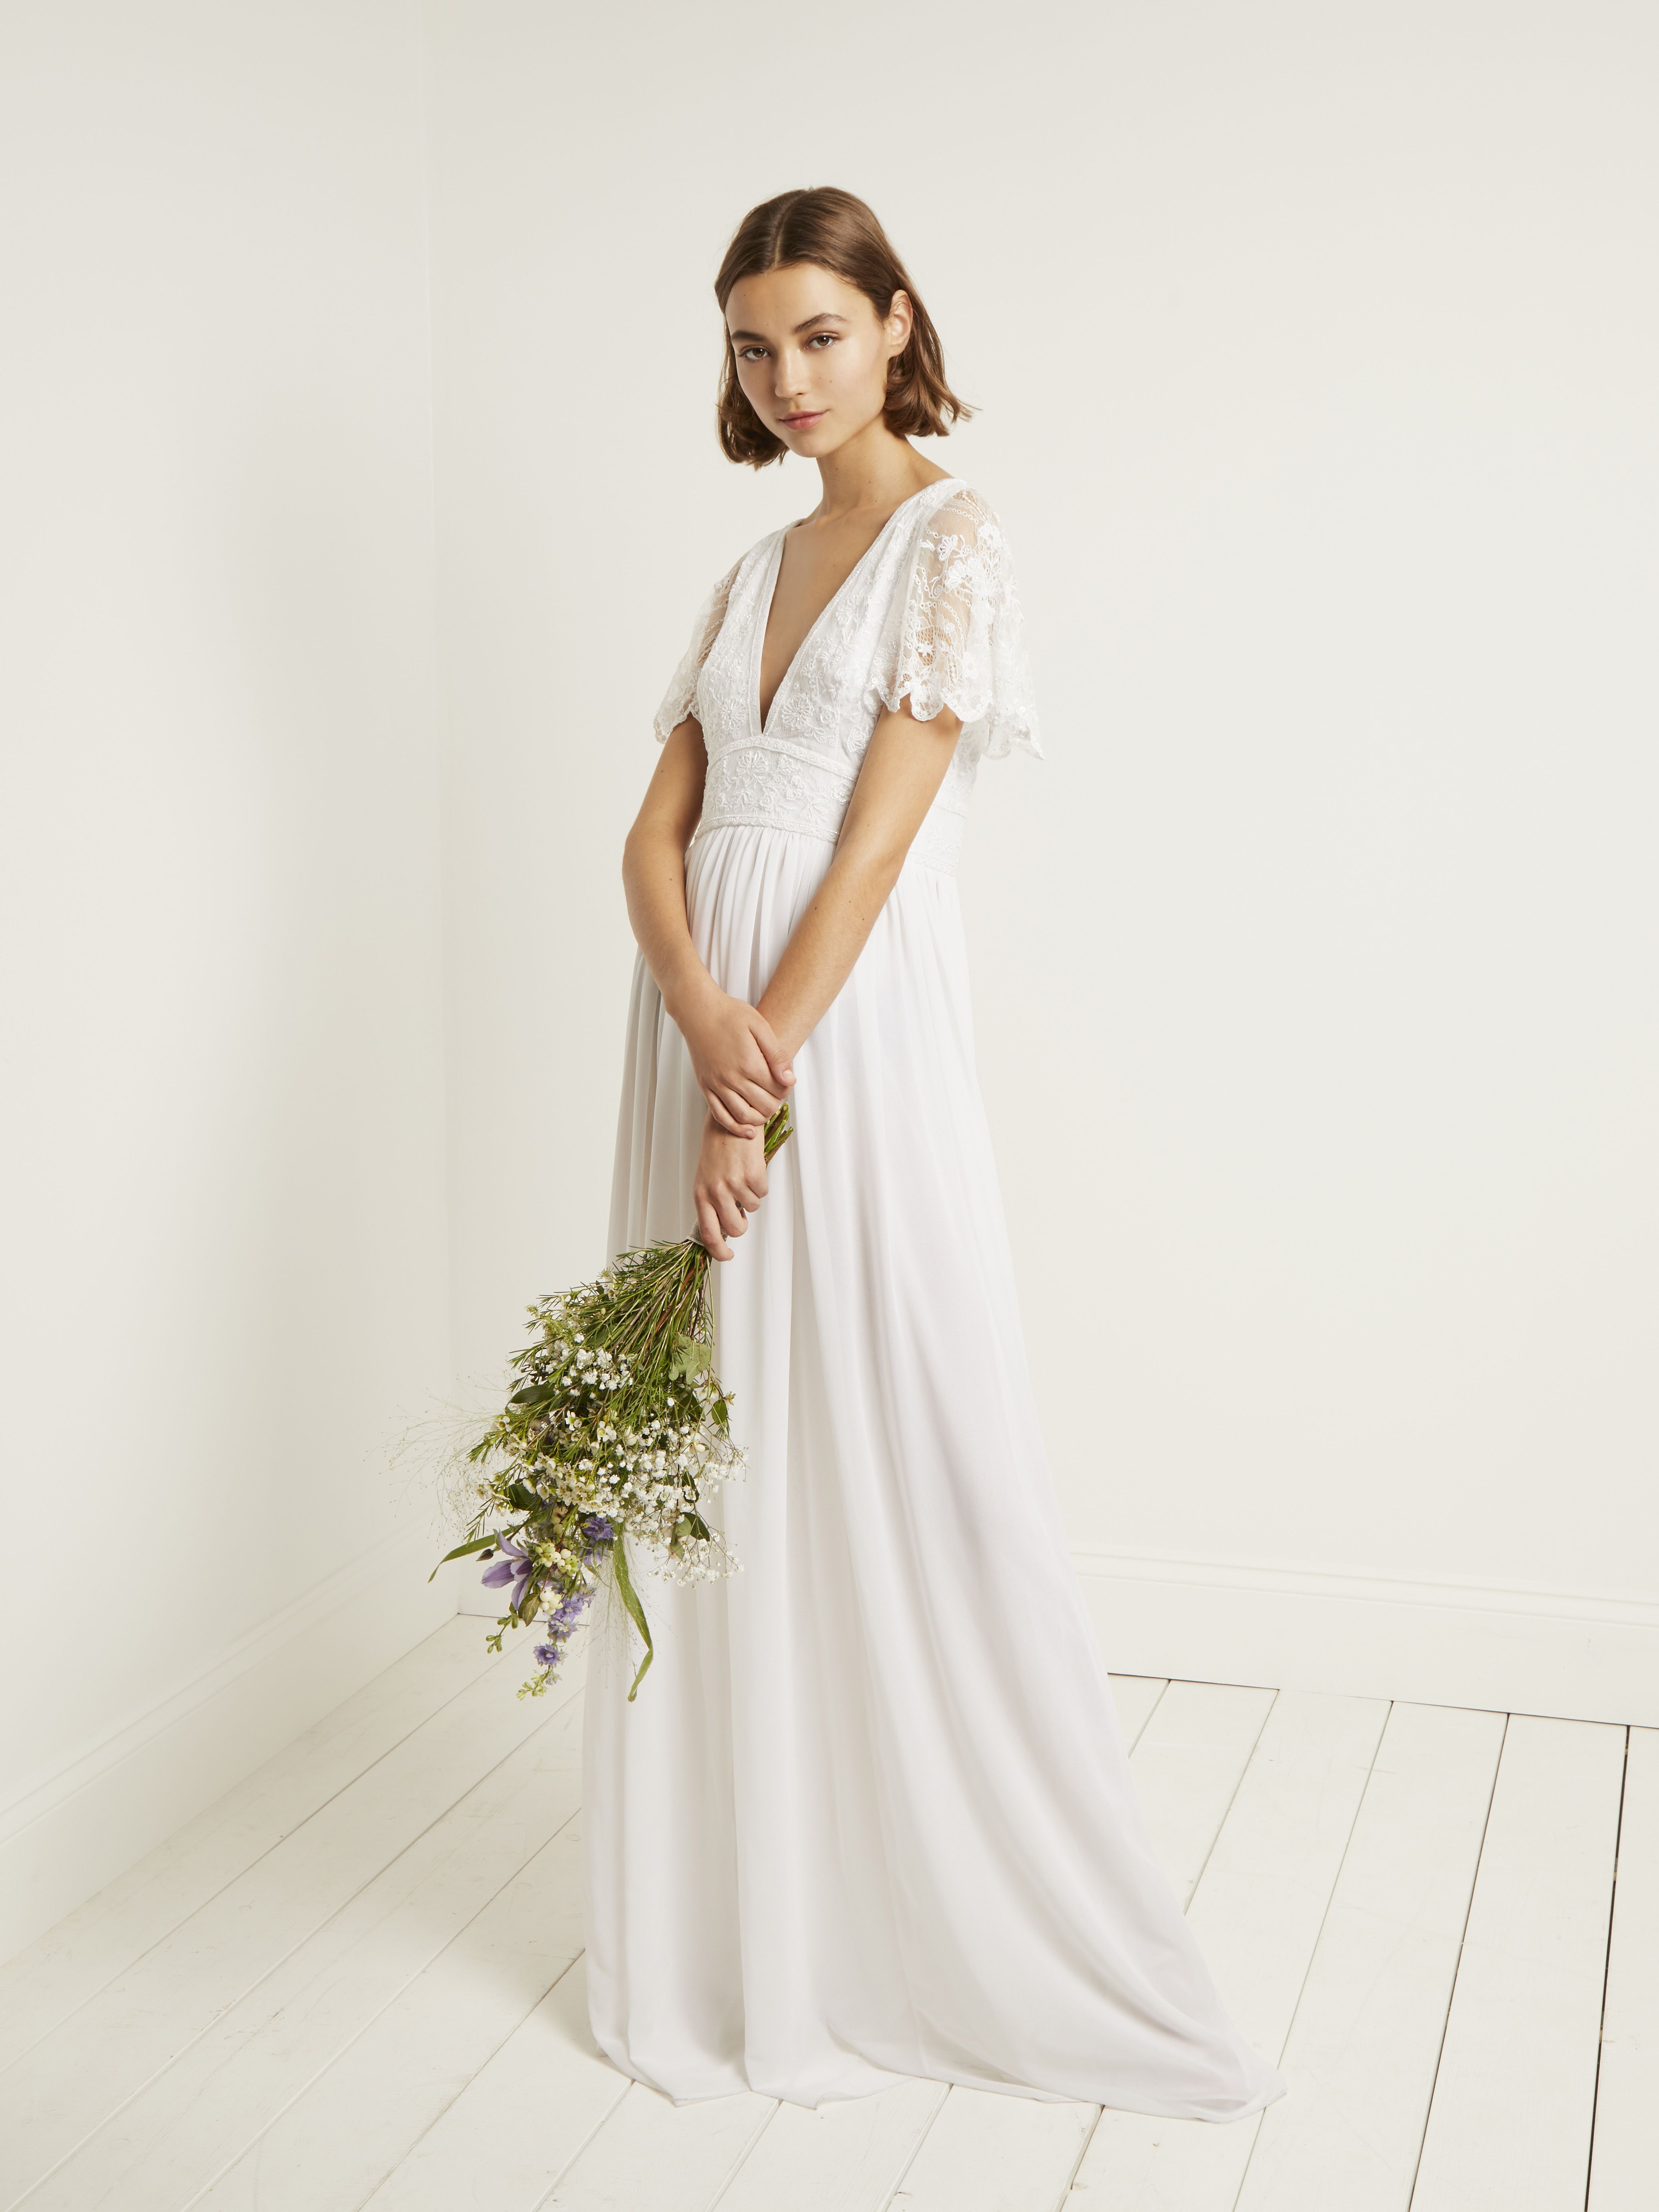 1634a59ec70 French Connection wedding dresses - French Connection launches ...